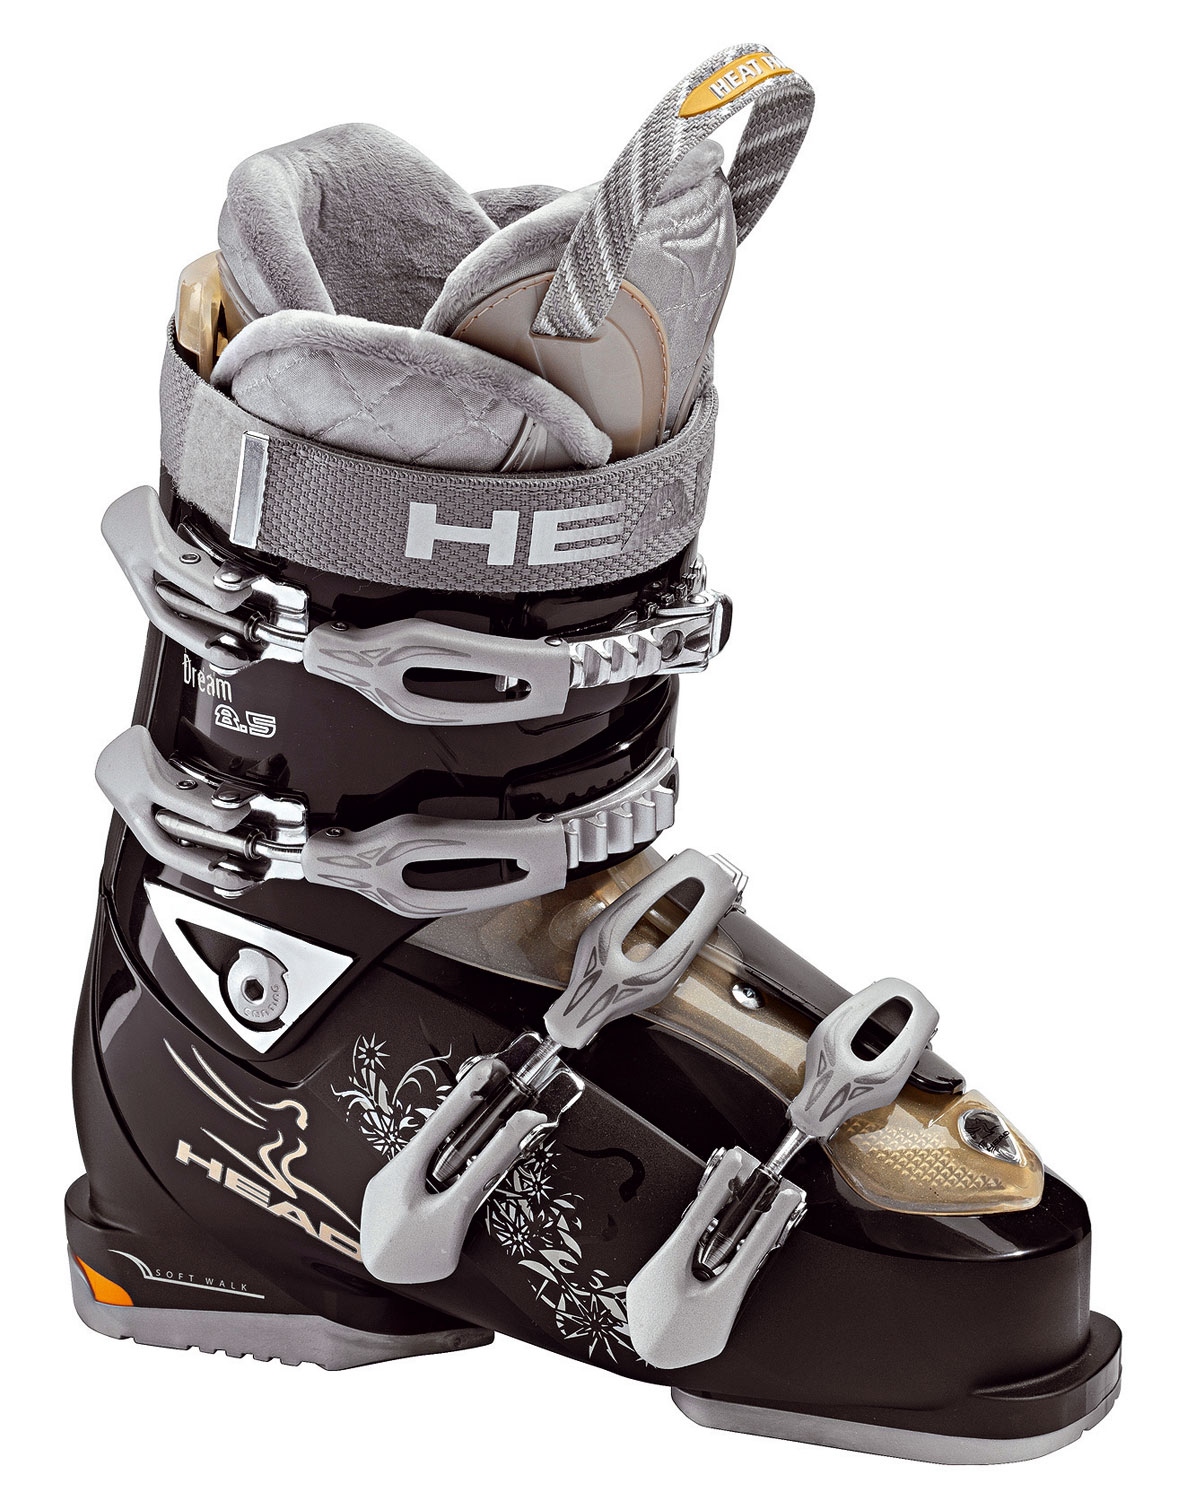 Ski These 100% by women for women boots have become dream boots for active women around the world. 08.09 they come back with even more focus on comfort (check the new easy entry instep ratchet), performance, and great looks.Key Features of The Head Dreams 8.5 HF Women's Ski Boots: Expert/WP Level/Last SL Shell Women's Super Heat 3 with Fur Lining and Thermaluxe Tips Women's Fleece Atomical Footbed 30mm Velcro Strap Prepared for Heating System 4 Micro Adjustable Alloy Buckles 2 Double Power Buckles Easy Entry Instep Ratchet Supermarcro Ratchet Stiffer/Softer Flex Adjustment Adj. Wedge Arch Support Double Canting Double Adjustable Profile Soft Walk Heel Women's Specific Supportive Heel - $251.95